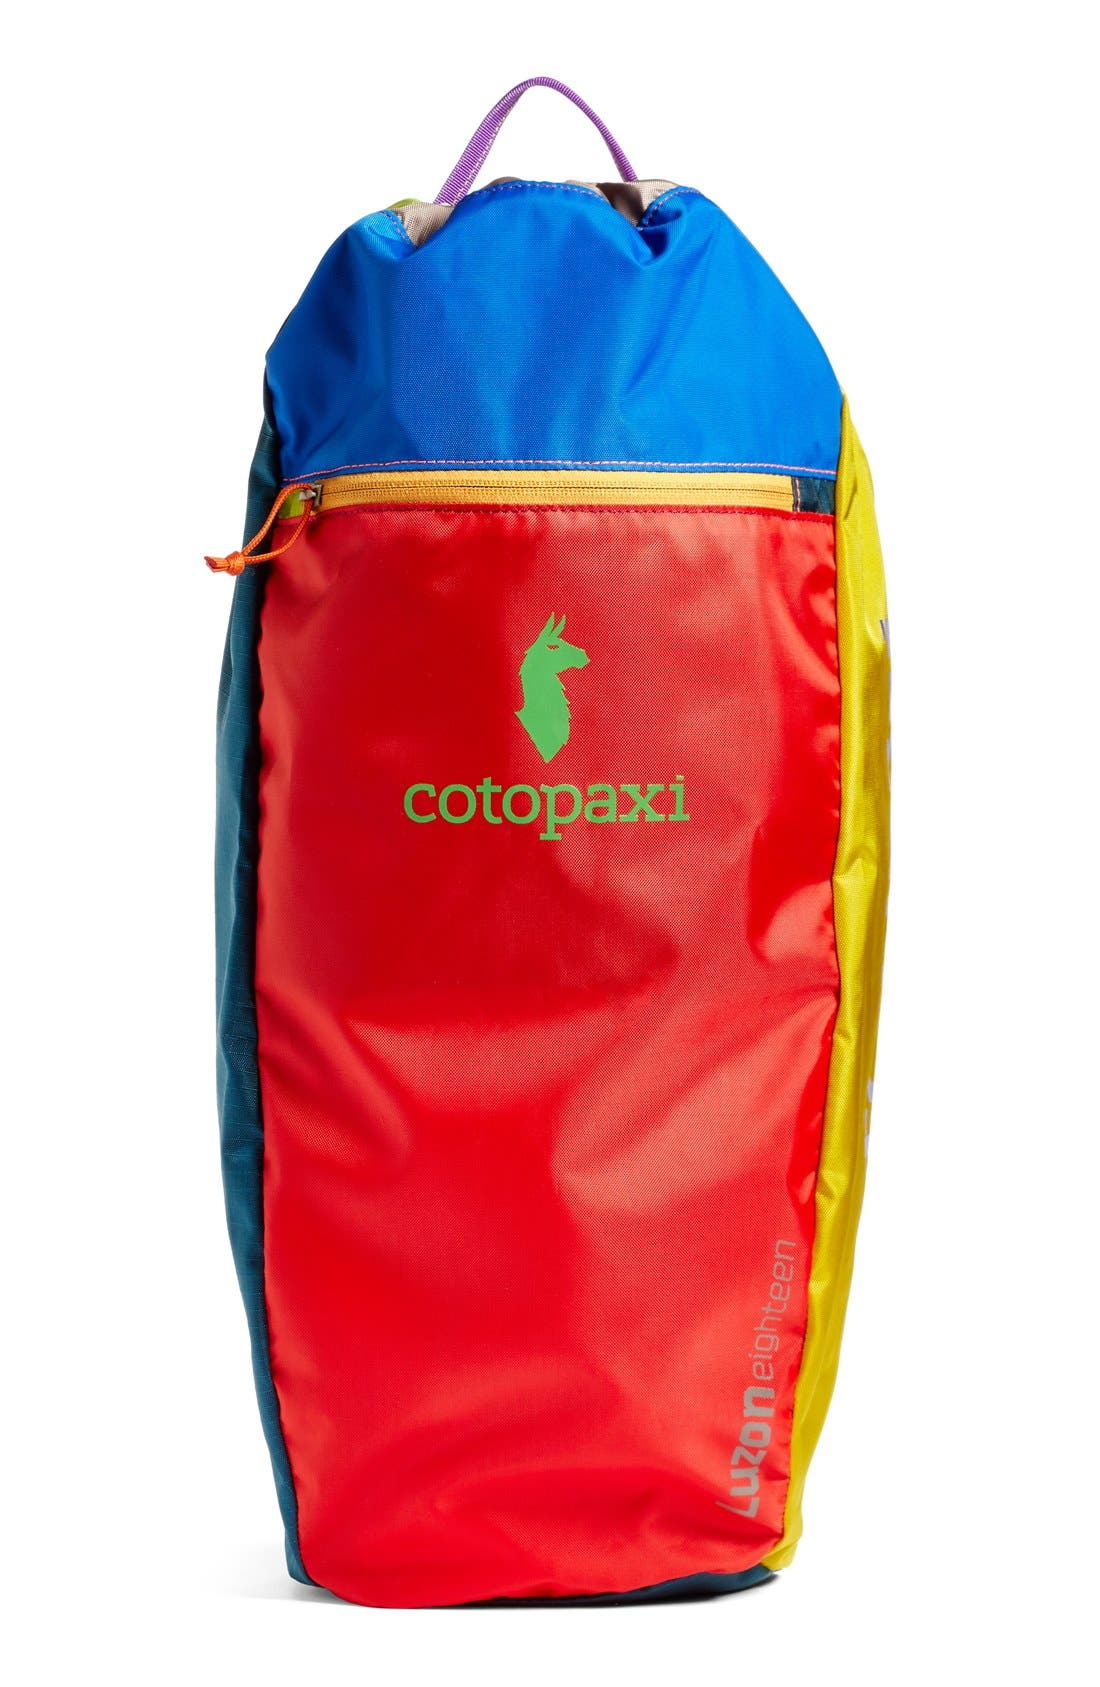 Alternate Image 1 Selected - Cotopaxi Luzon Del Dia One of a Kind Ripstop Nylon Daypack